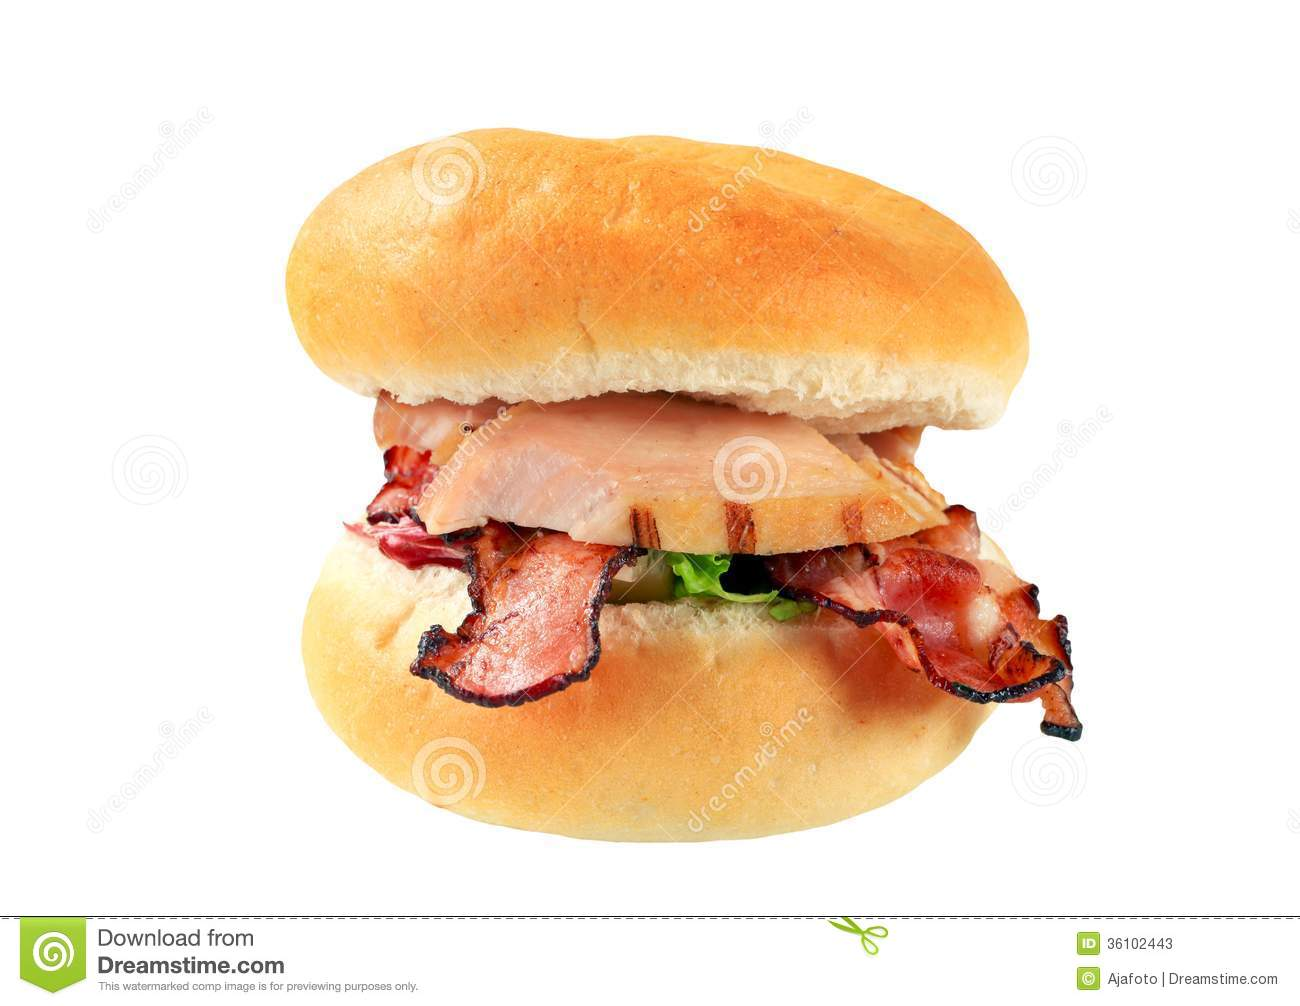 Grilled Chicken Sandwich Clipart Bread Bun With Grilled Chicken And